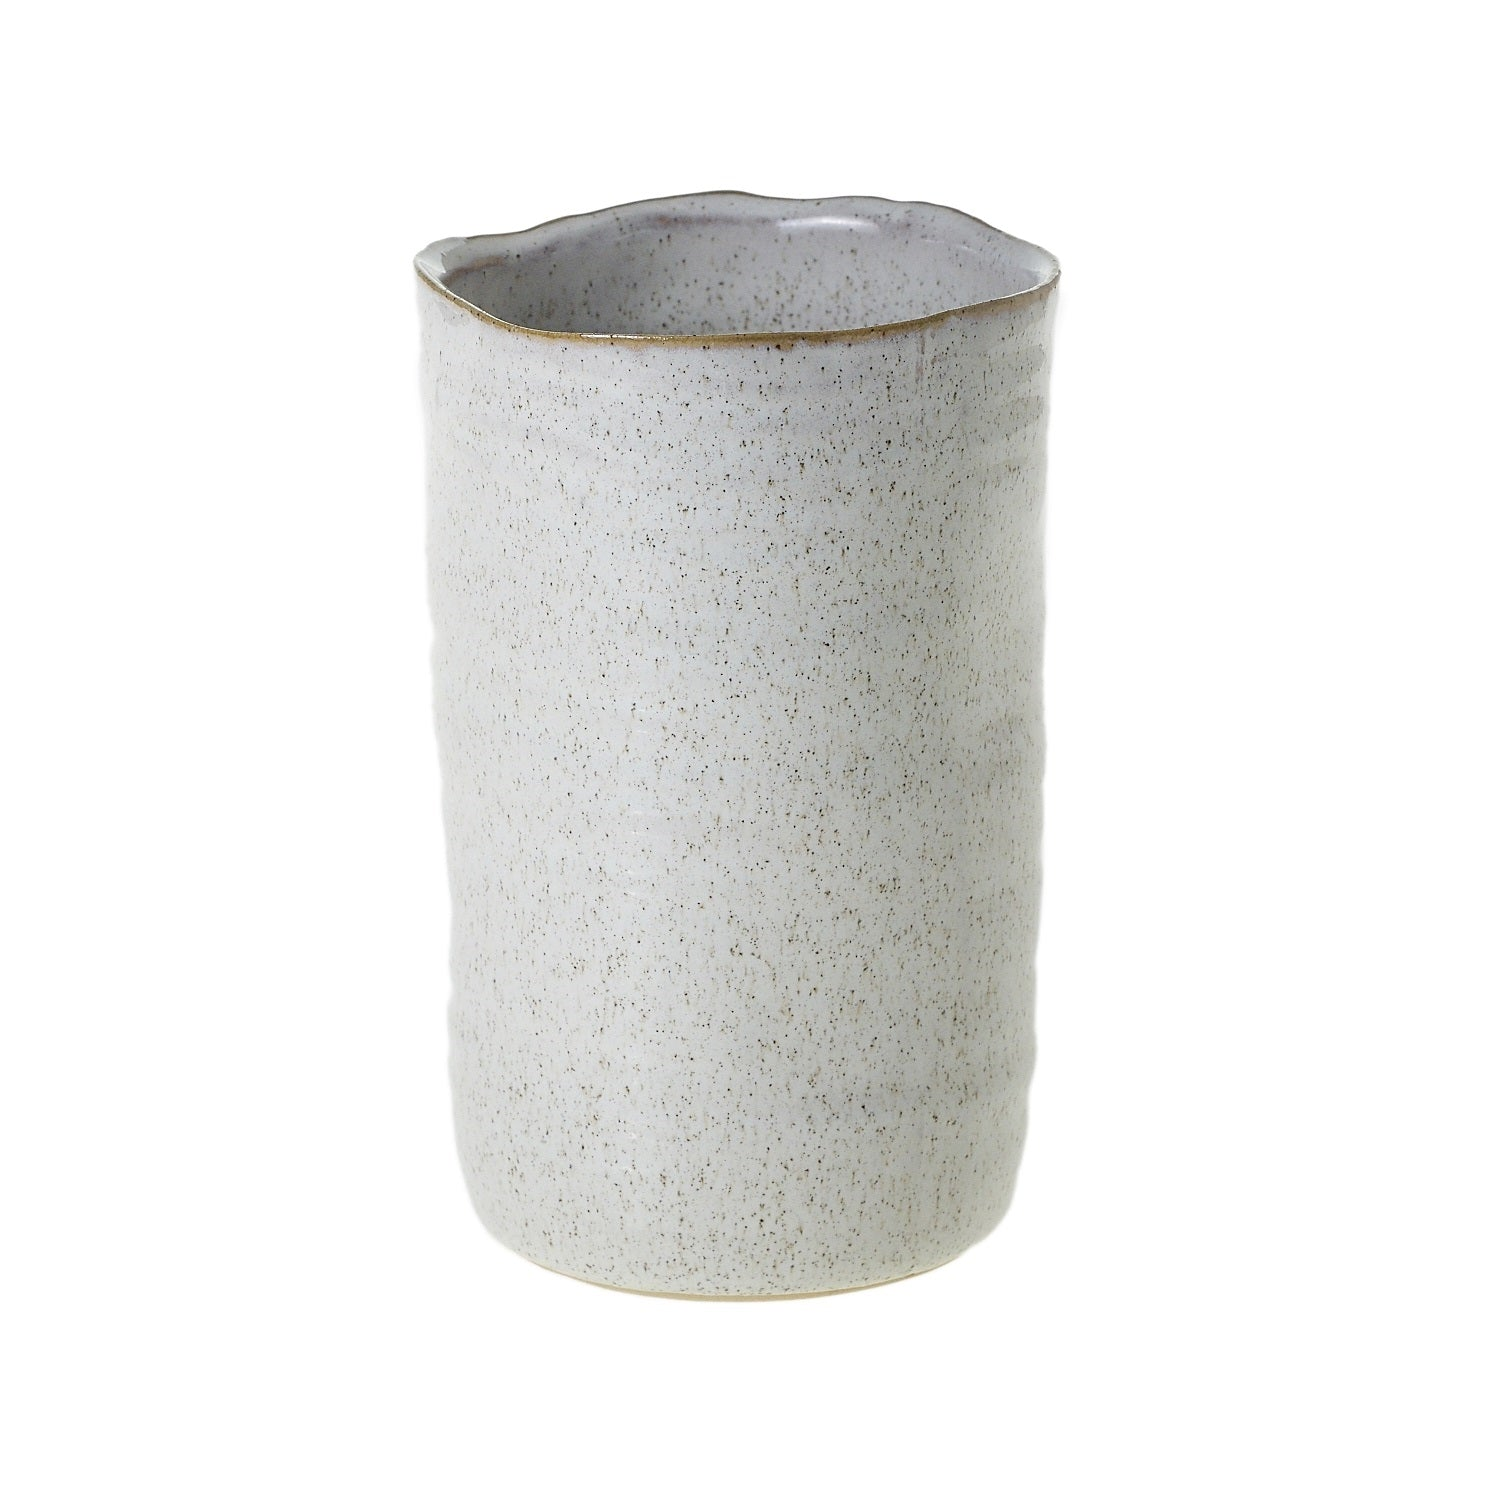 Glazed Ceramic Vase